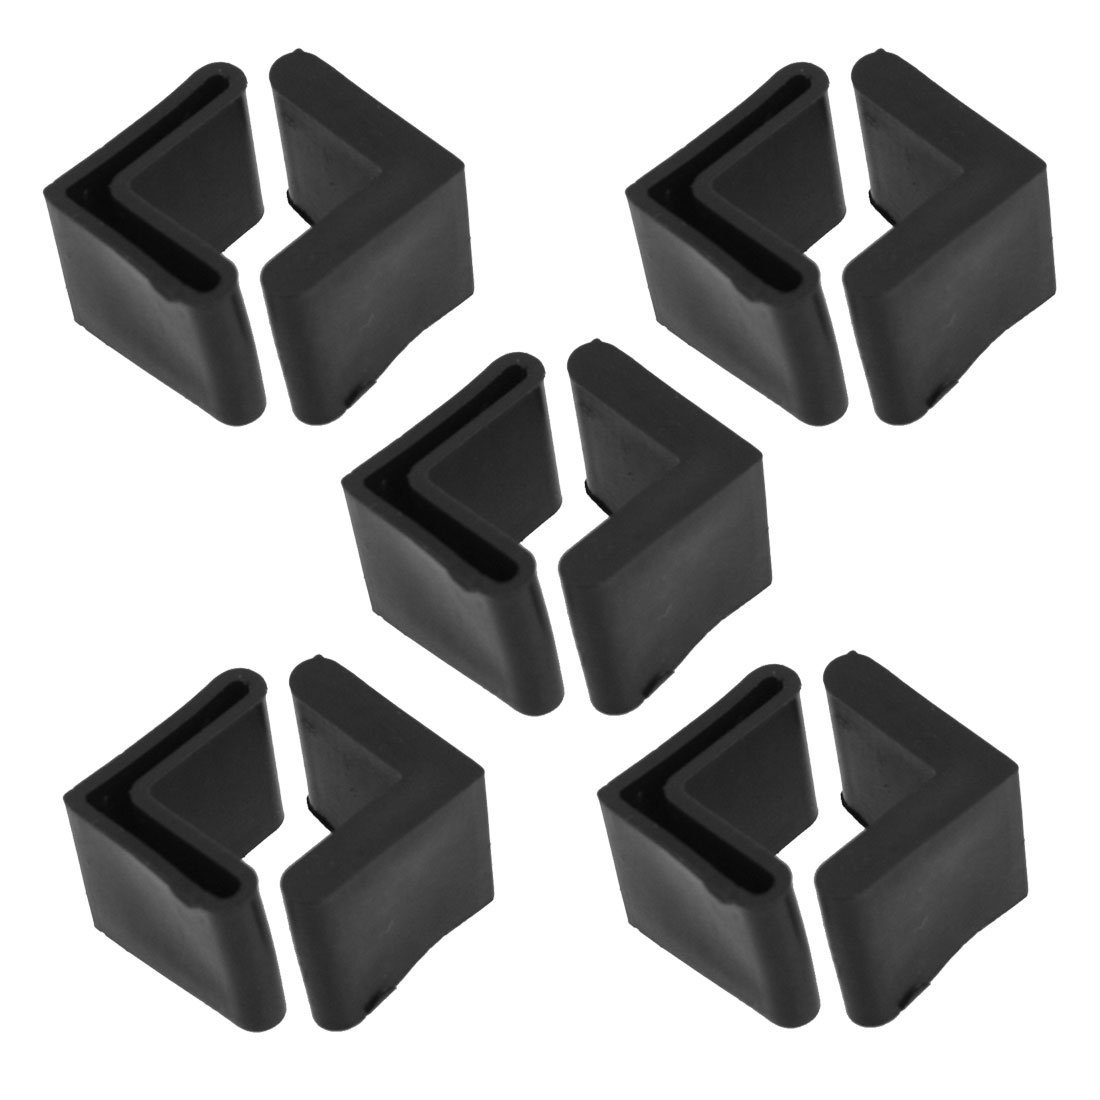 Rubber L Shaped Angle Iron Foot Pads Covers 10 Pcs Black